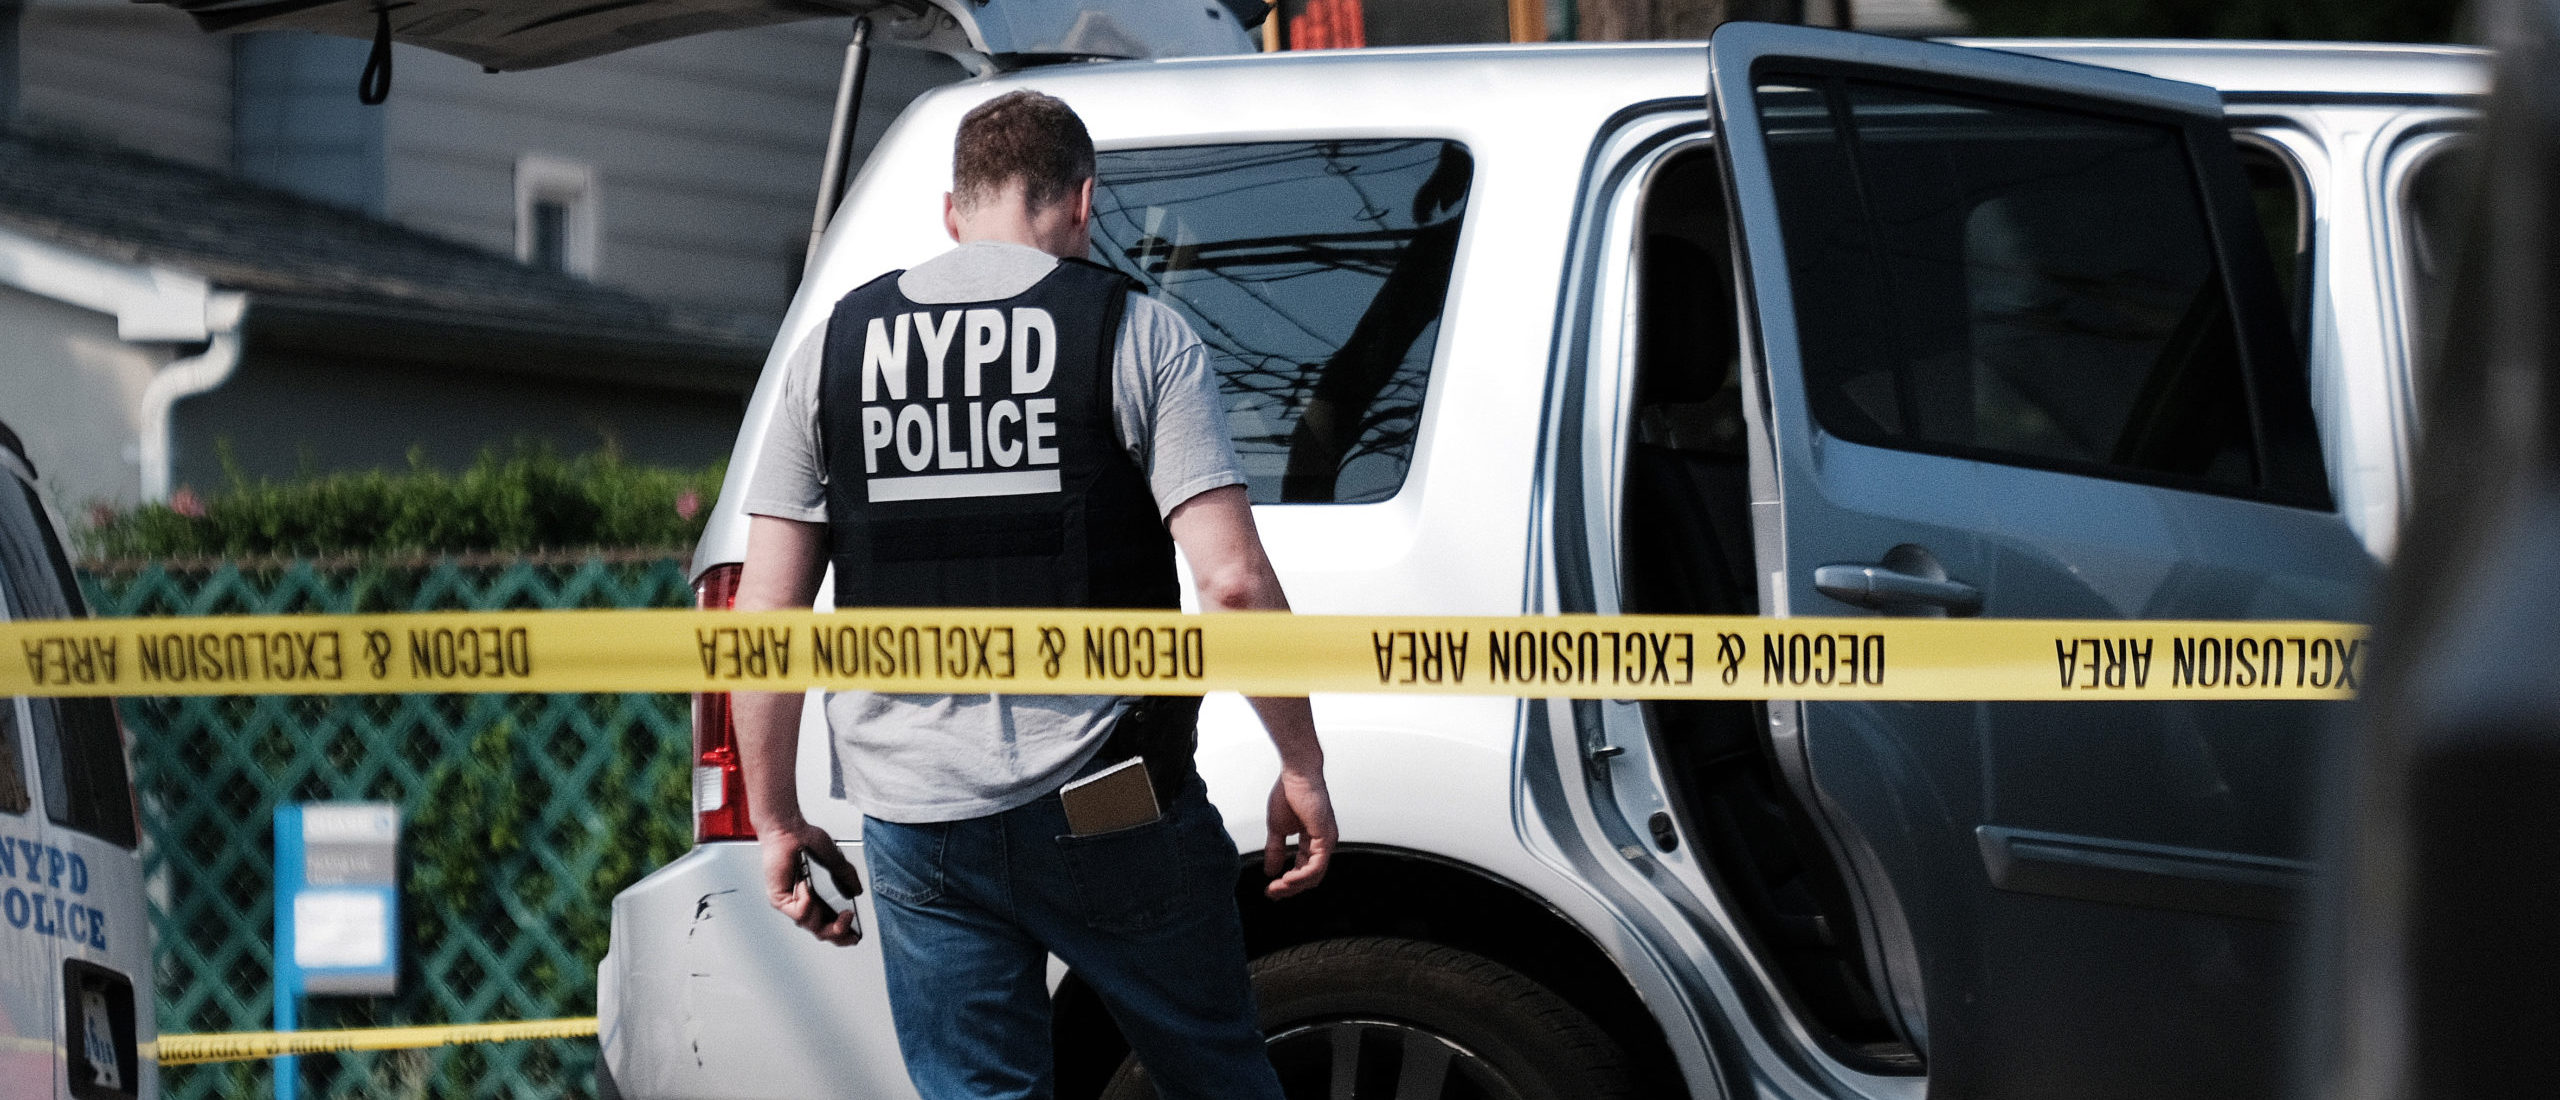 NEW YORK, NEW YORK - JULY 08: Police search a car following a stand-off in front of the 45th Police Precinct in the Bronx on July 08, 2021 in New York City. An armed man in an SUV brandished a gun in front of the precinct with reports of shots fired before he was apprehended. Eric Adams, the democratic winner of the mayoral primary and the likely next mayor of New York City, has promised to step-up searches for illegal guns and to bring back an undercover unit of officers. (Photo by Spencer Platt/Getty Images)